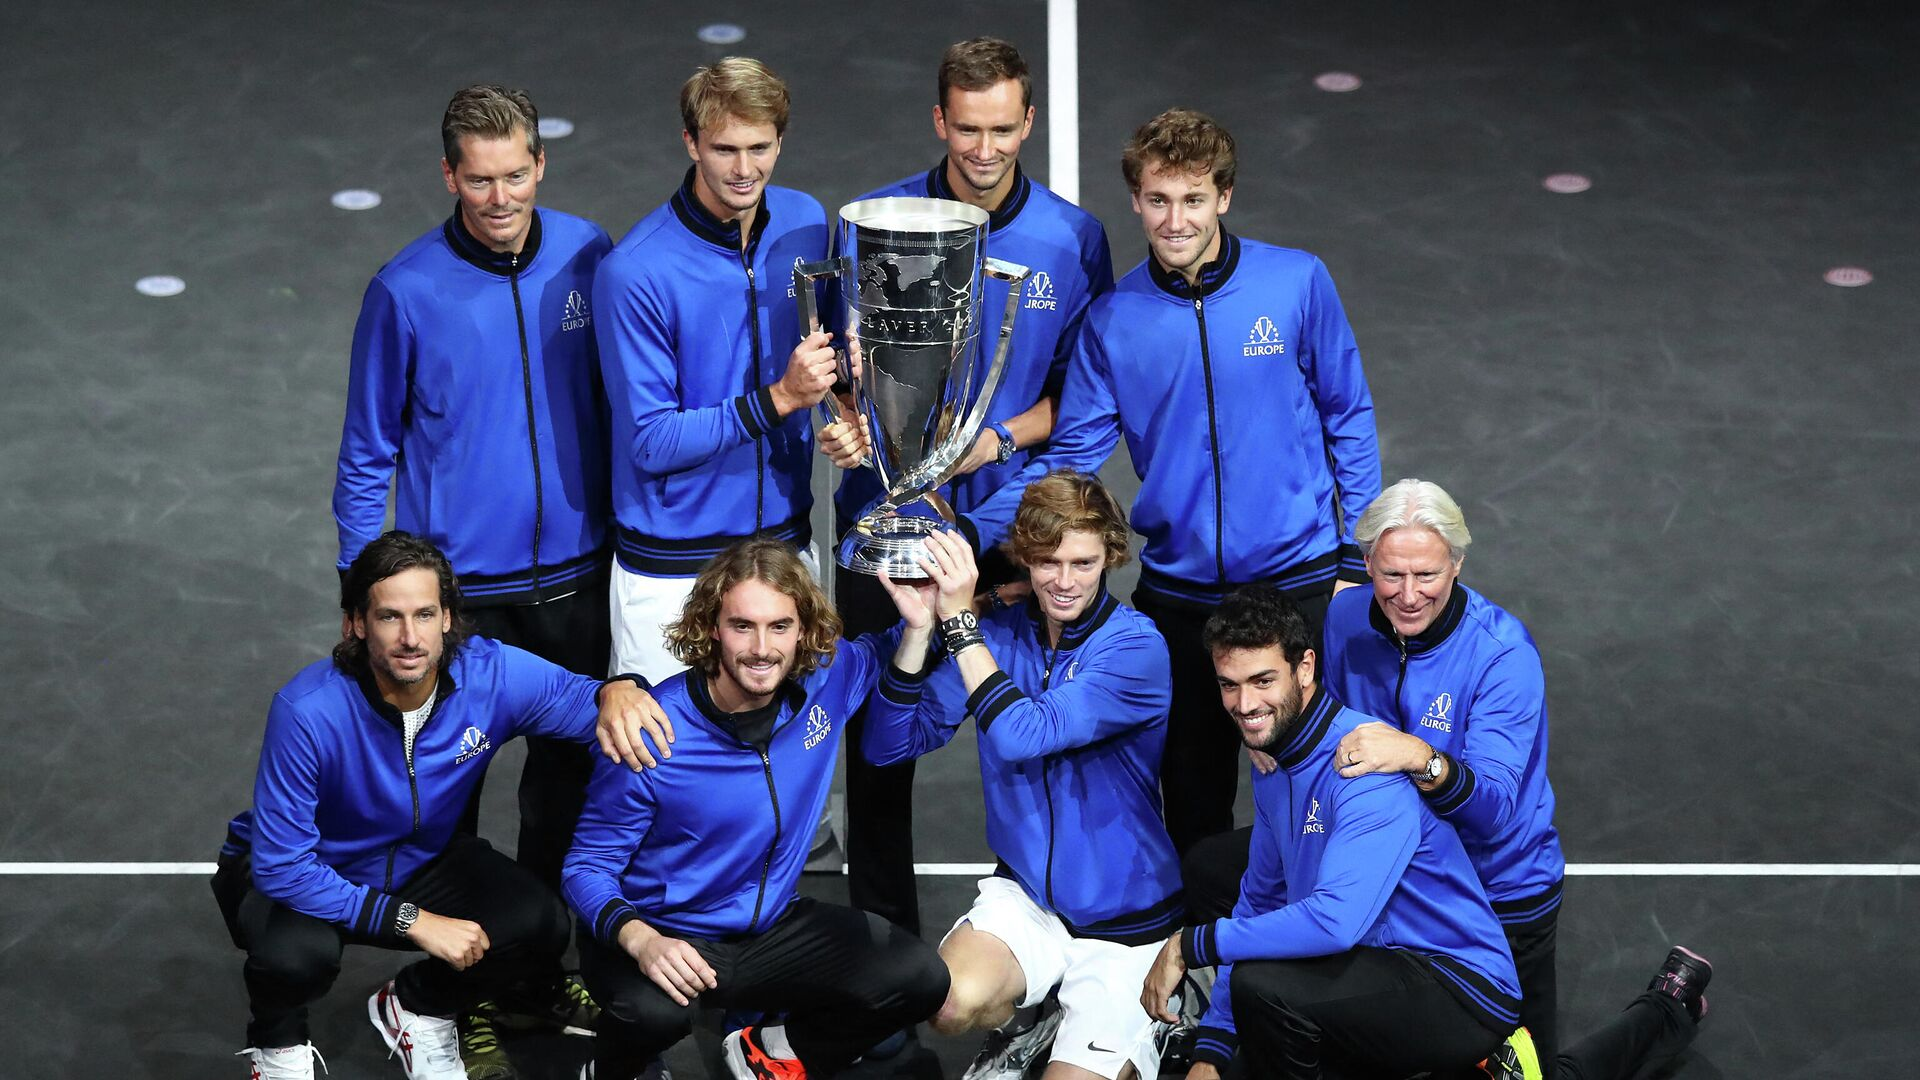 BOSTON, MASSACHUSETTS - SEPTEMBER 26: (Top L-R) Vice Captain Thomas Enqvist, Alexander Zverev, Daniil Medvedev, Casper Ruud (Bottom L-R) Feliciano Lopez, Stefanos Tsitsipas, Andrey Rublev, Matteo Berrettini and Captain Bjorn Borg of Team Europe pose with the Laver Cup trophy after Team Europe defeated Team World to win the 2021 Laver Cup at TD Garden on September 26, 2021 in Boston, Massachusetts.   Adam Glanzman/Getty Images for Laver Cup/AFP (Photo by Adam Glanzman / GETTY IMAGES NORTH AMERICA / Getty Images via AFP) - РИА Новости, 1920, 27.09.2021